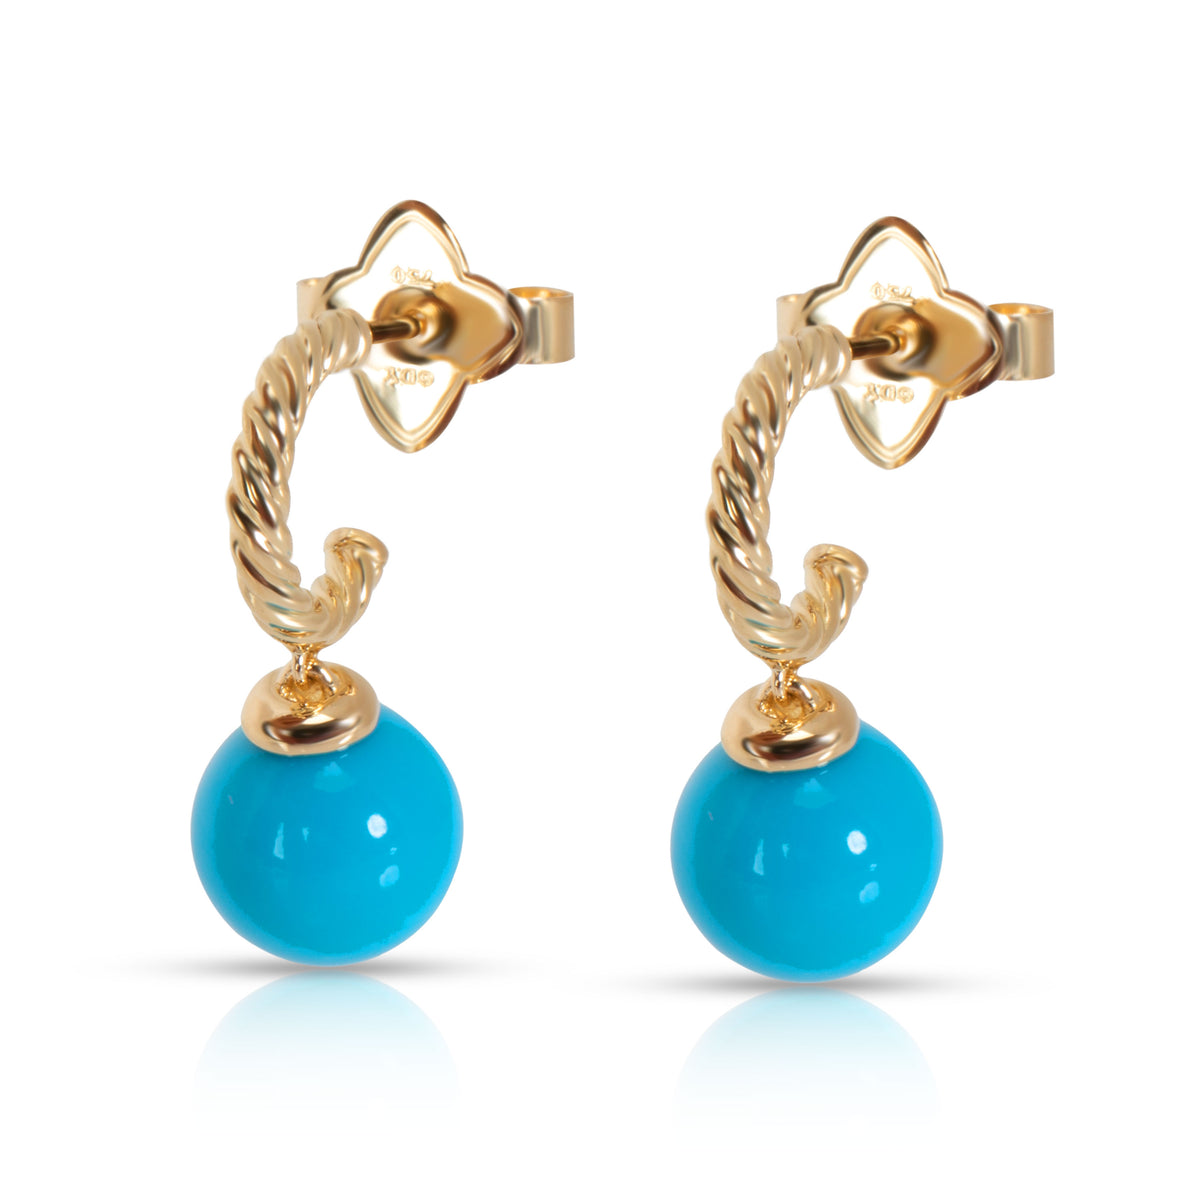 David Yurman Solari Turquoise Hoop Earrings in 18K Yellow Gold